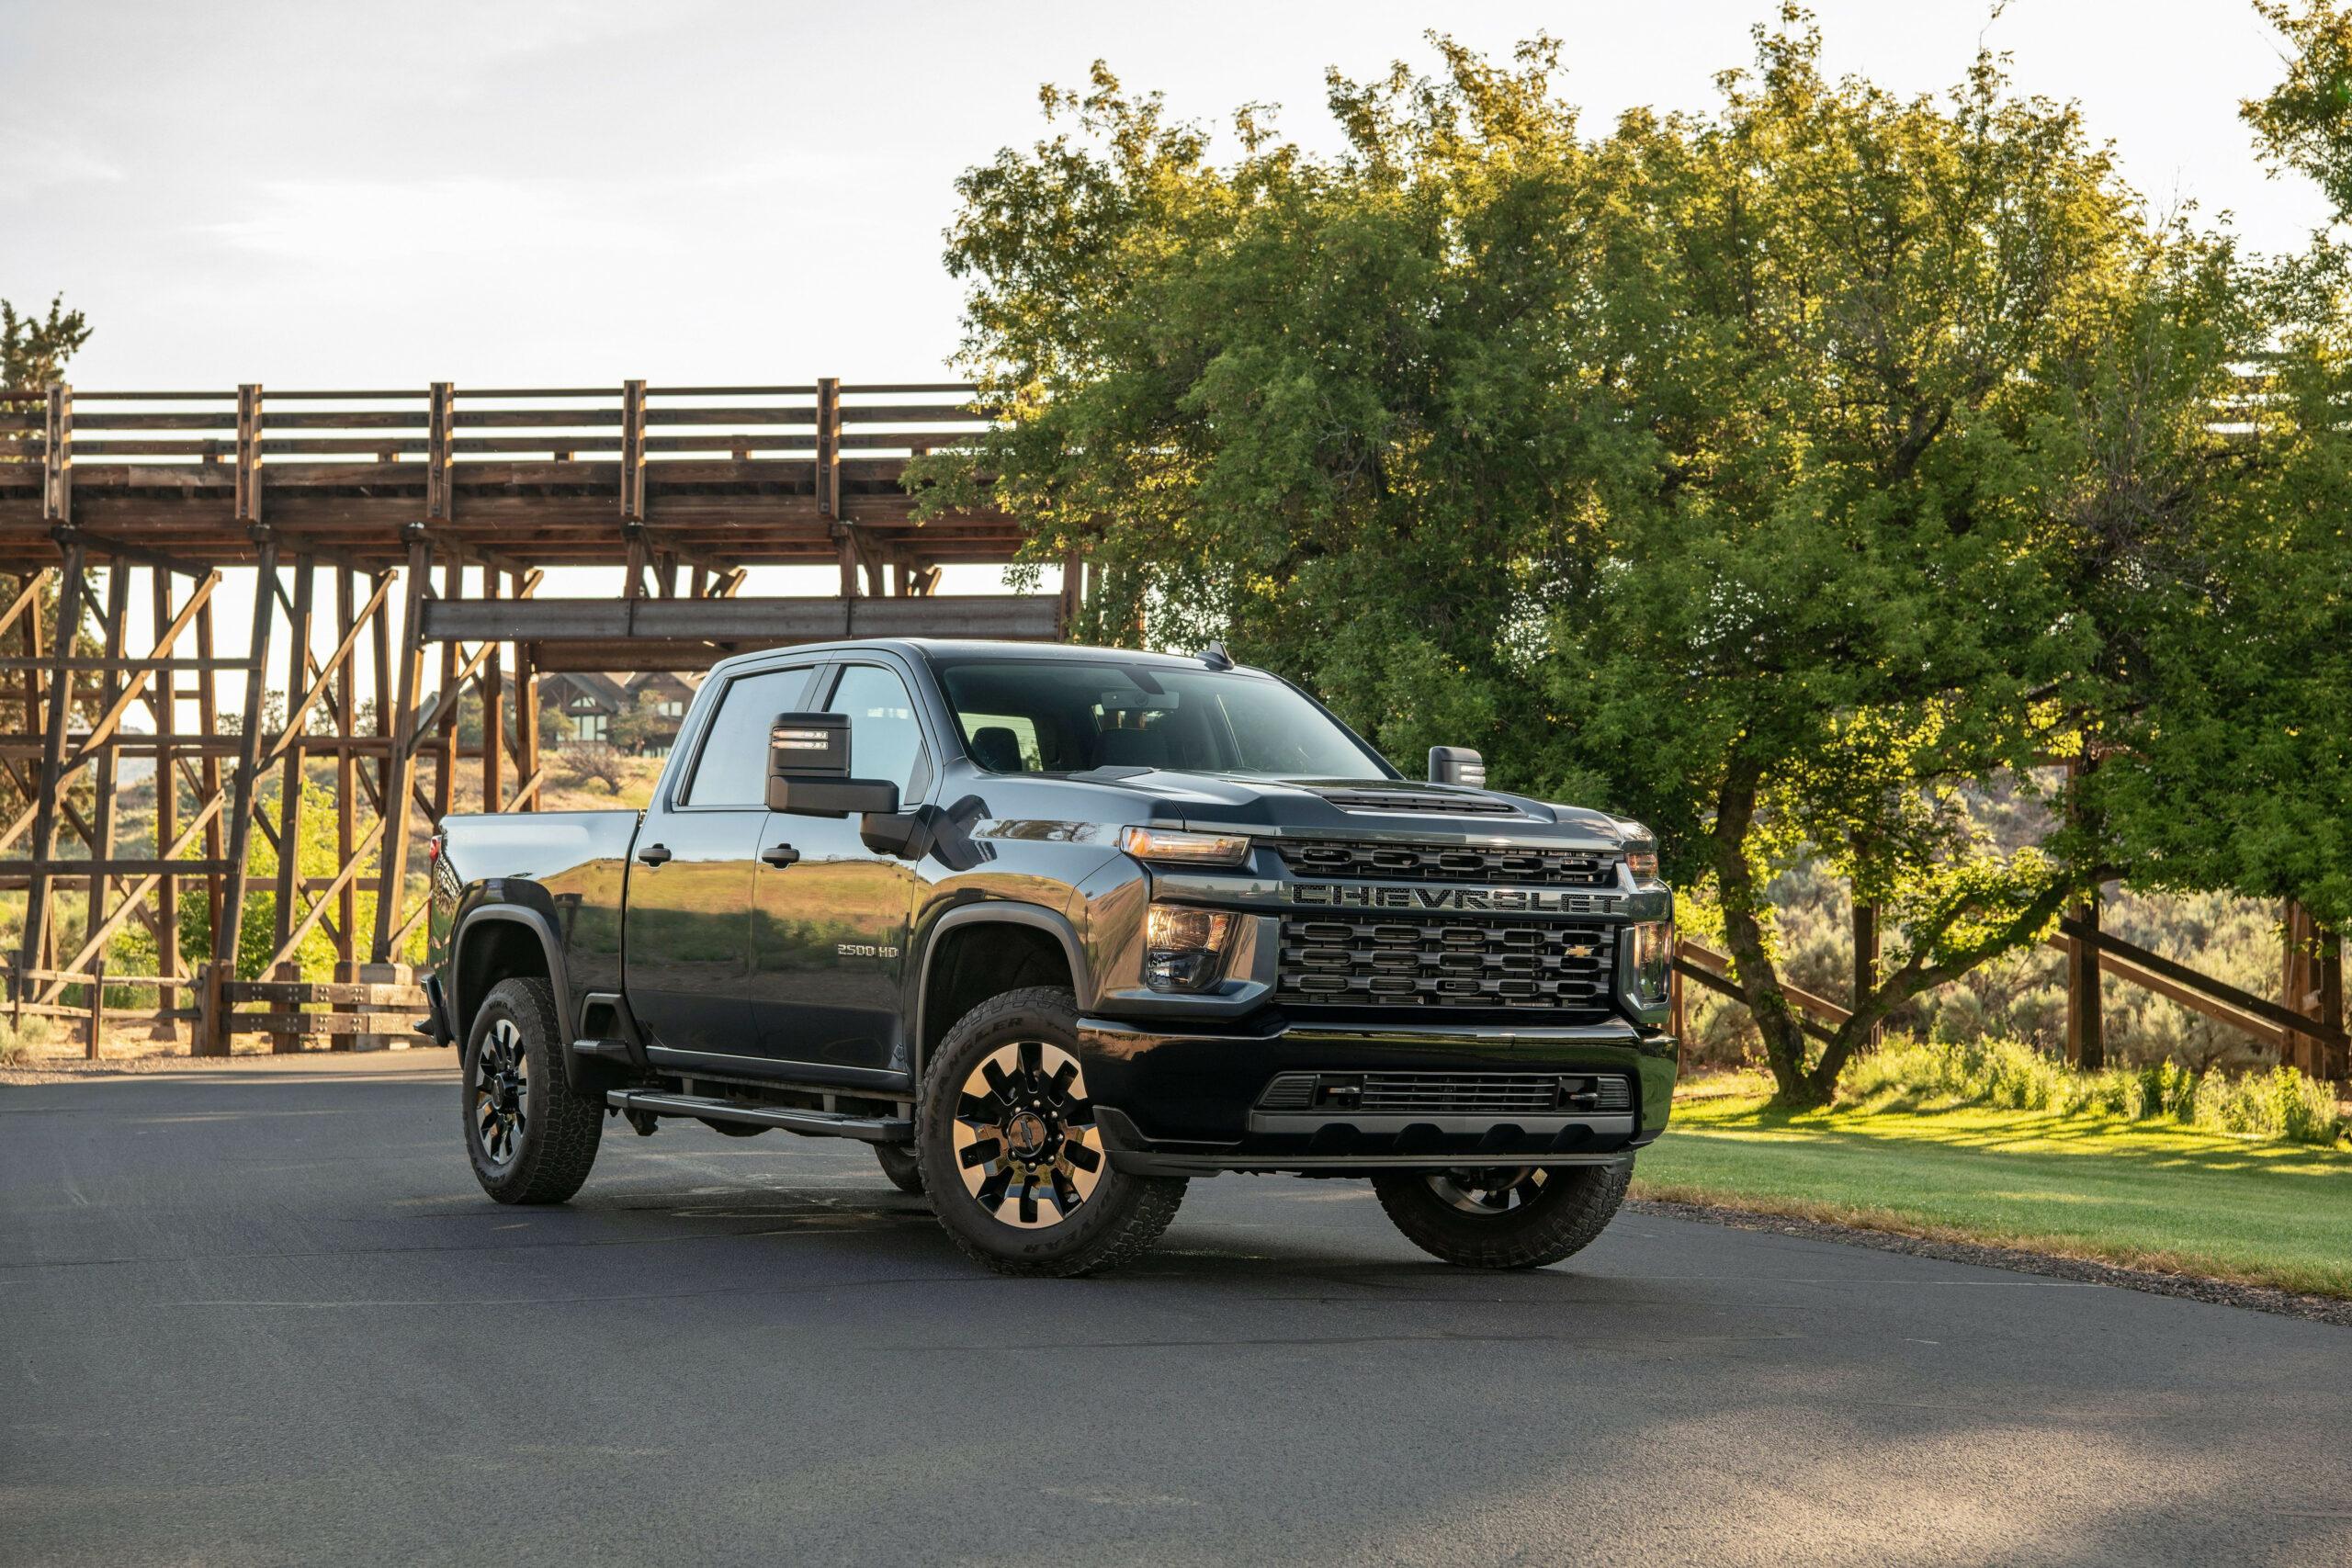 10 Chevrolet Silverado HD Review, Pricing, and Specs - chevrolet pickup 2020